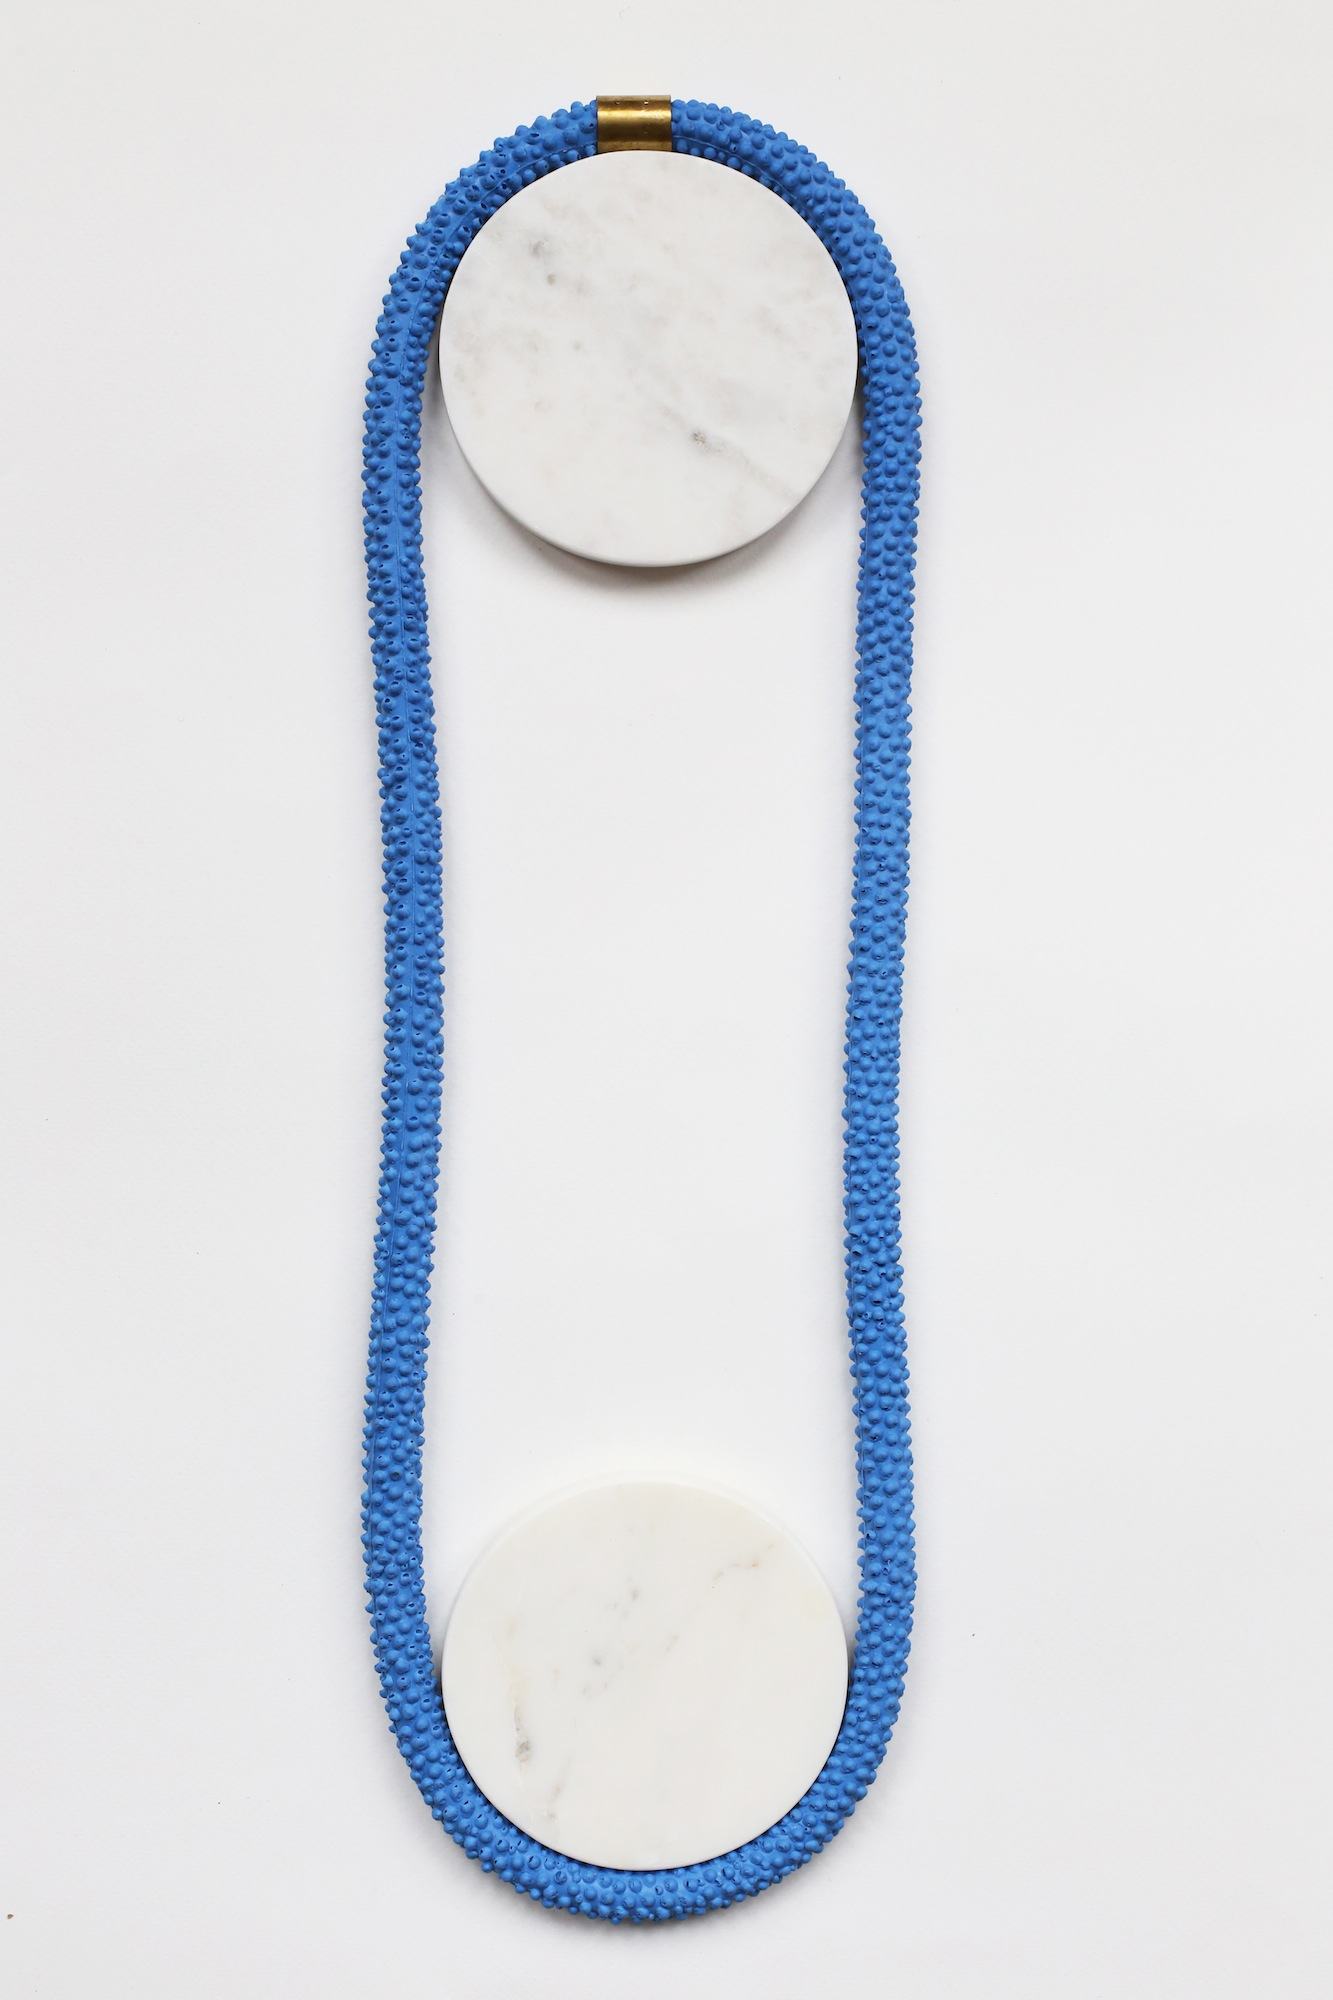 Nautilus | Statement Silicone Necklace | Blue